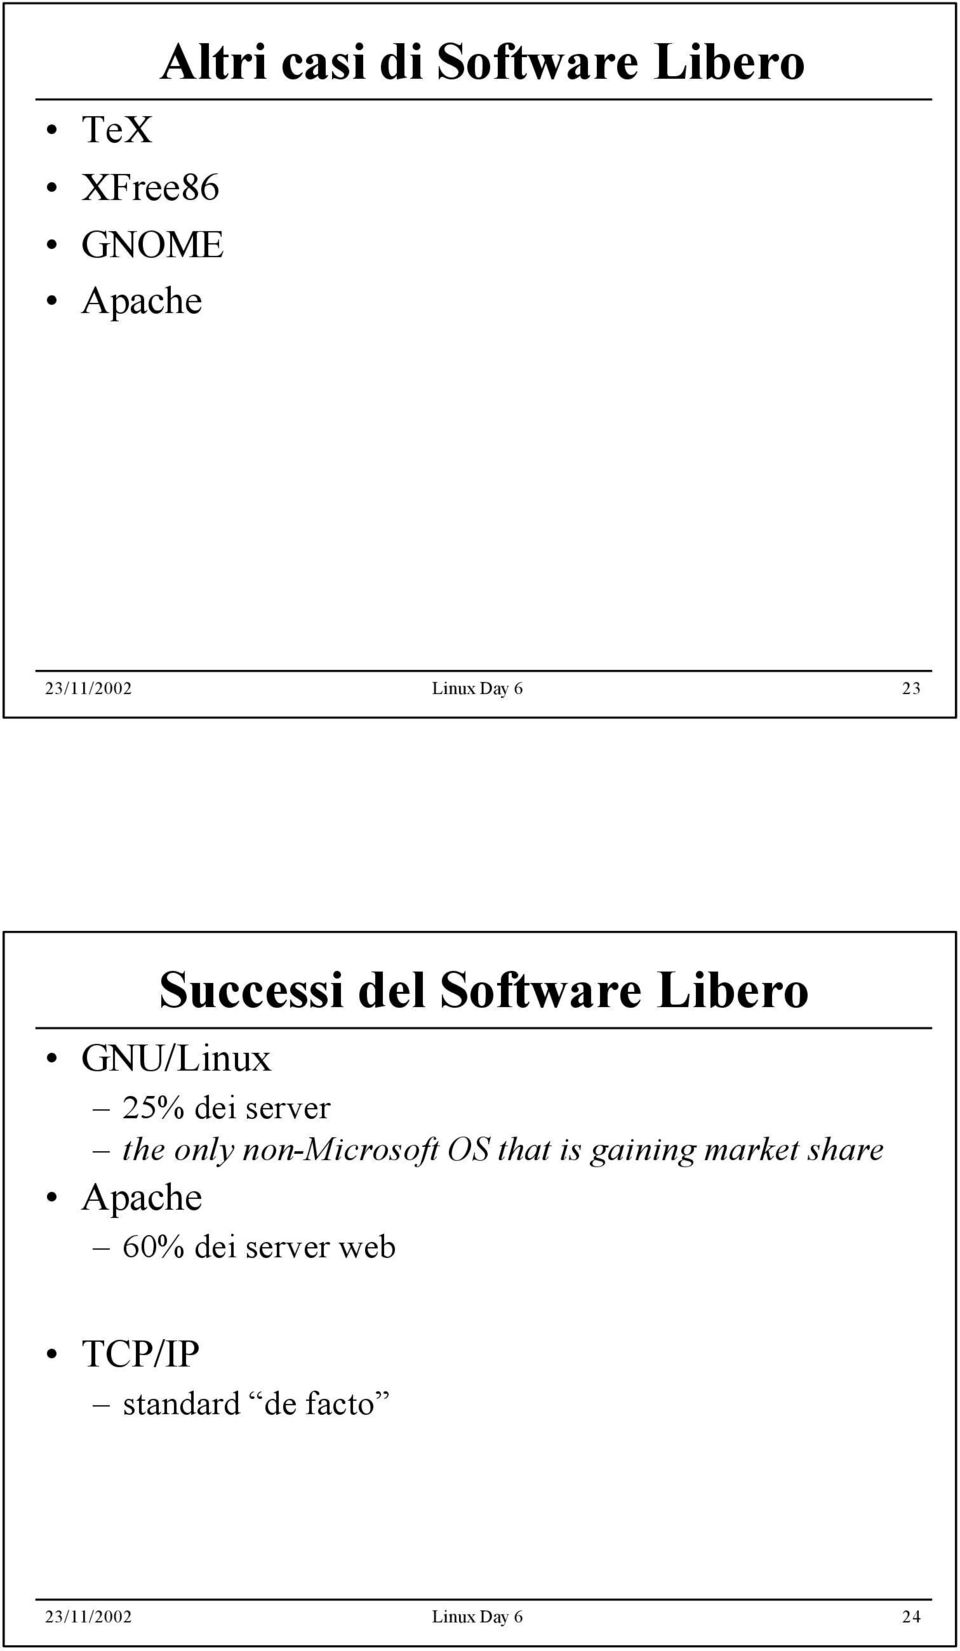 server the only non-microsoft OS that is gaining market share